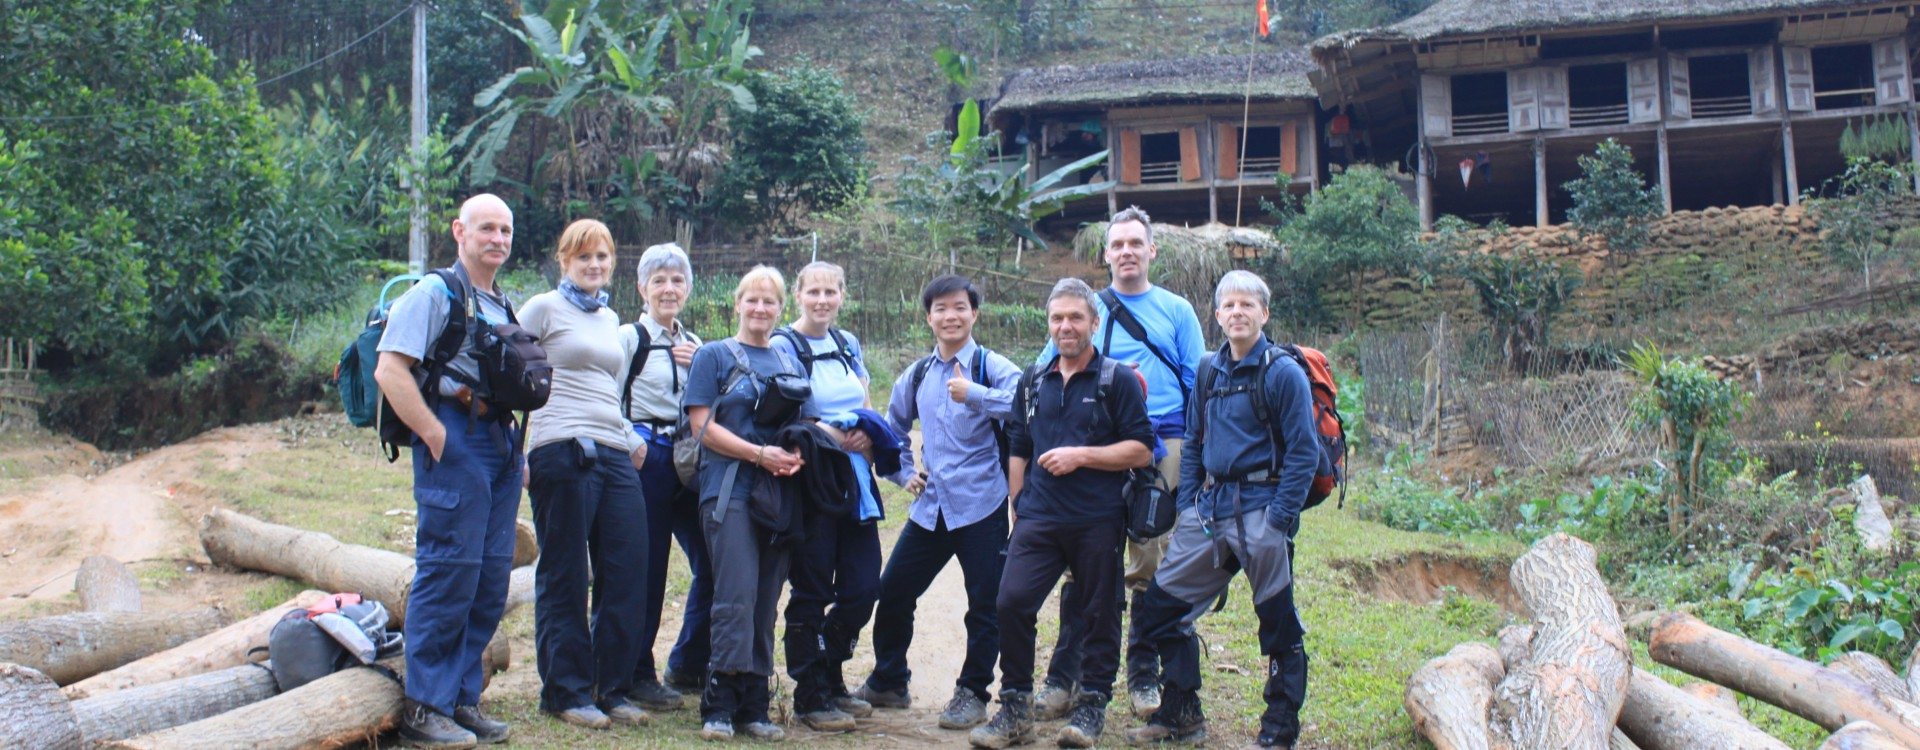 Group outstide the homestay